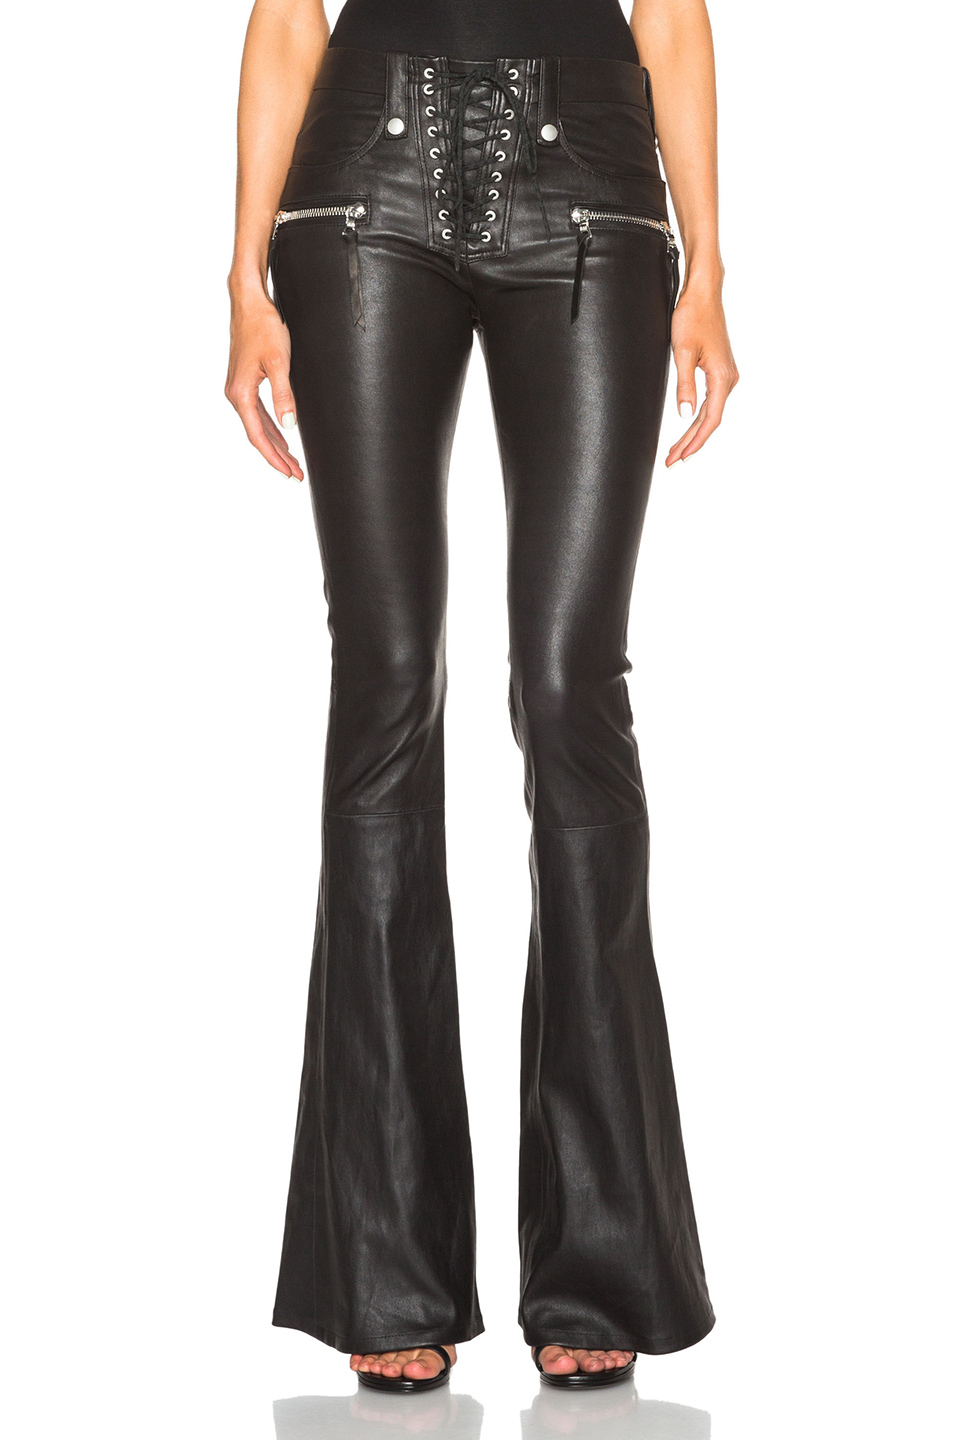 coupon codes search for genuine biggest selection Lace Front Flare Leather Pants, Unravel